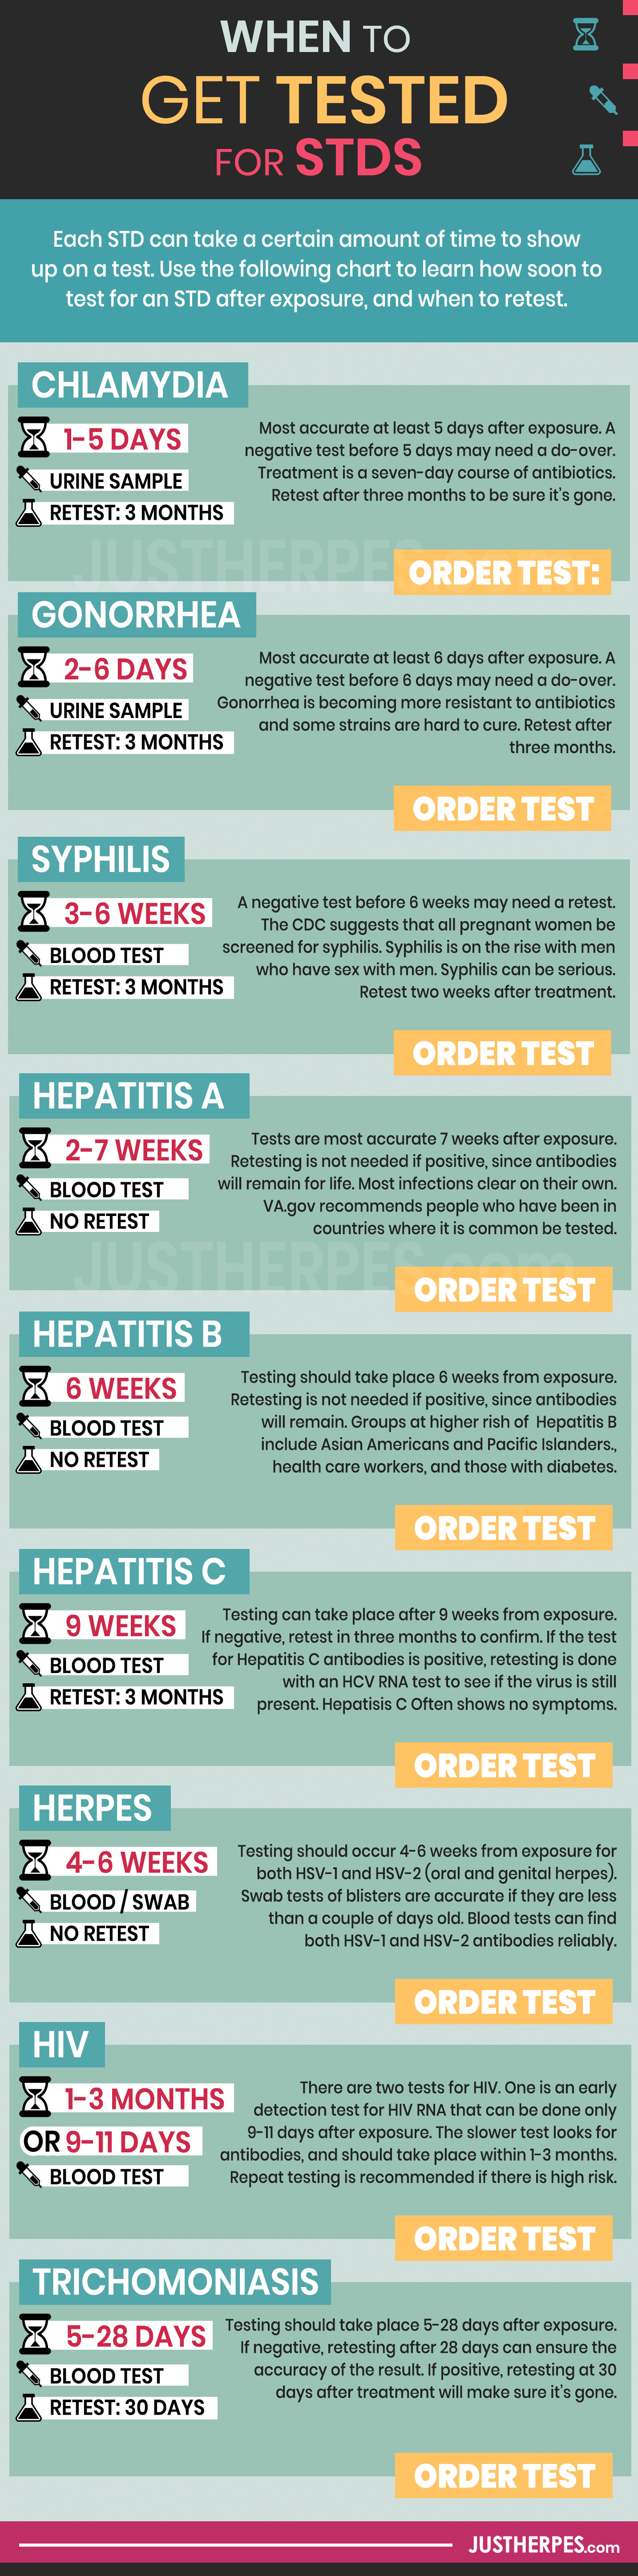 When to Get Tested for STDs Full Length Infographic about how long to wait before getting tested